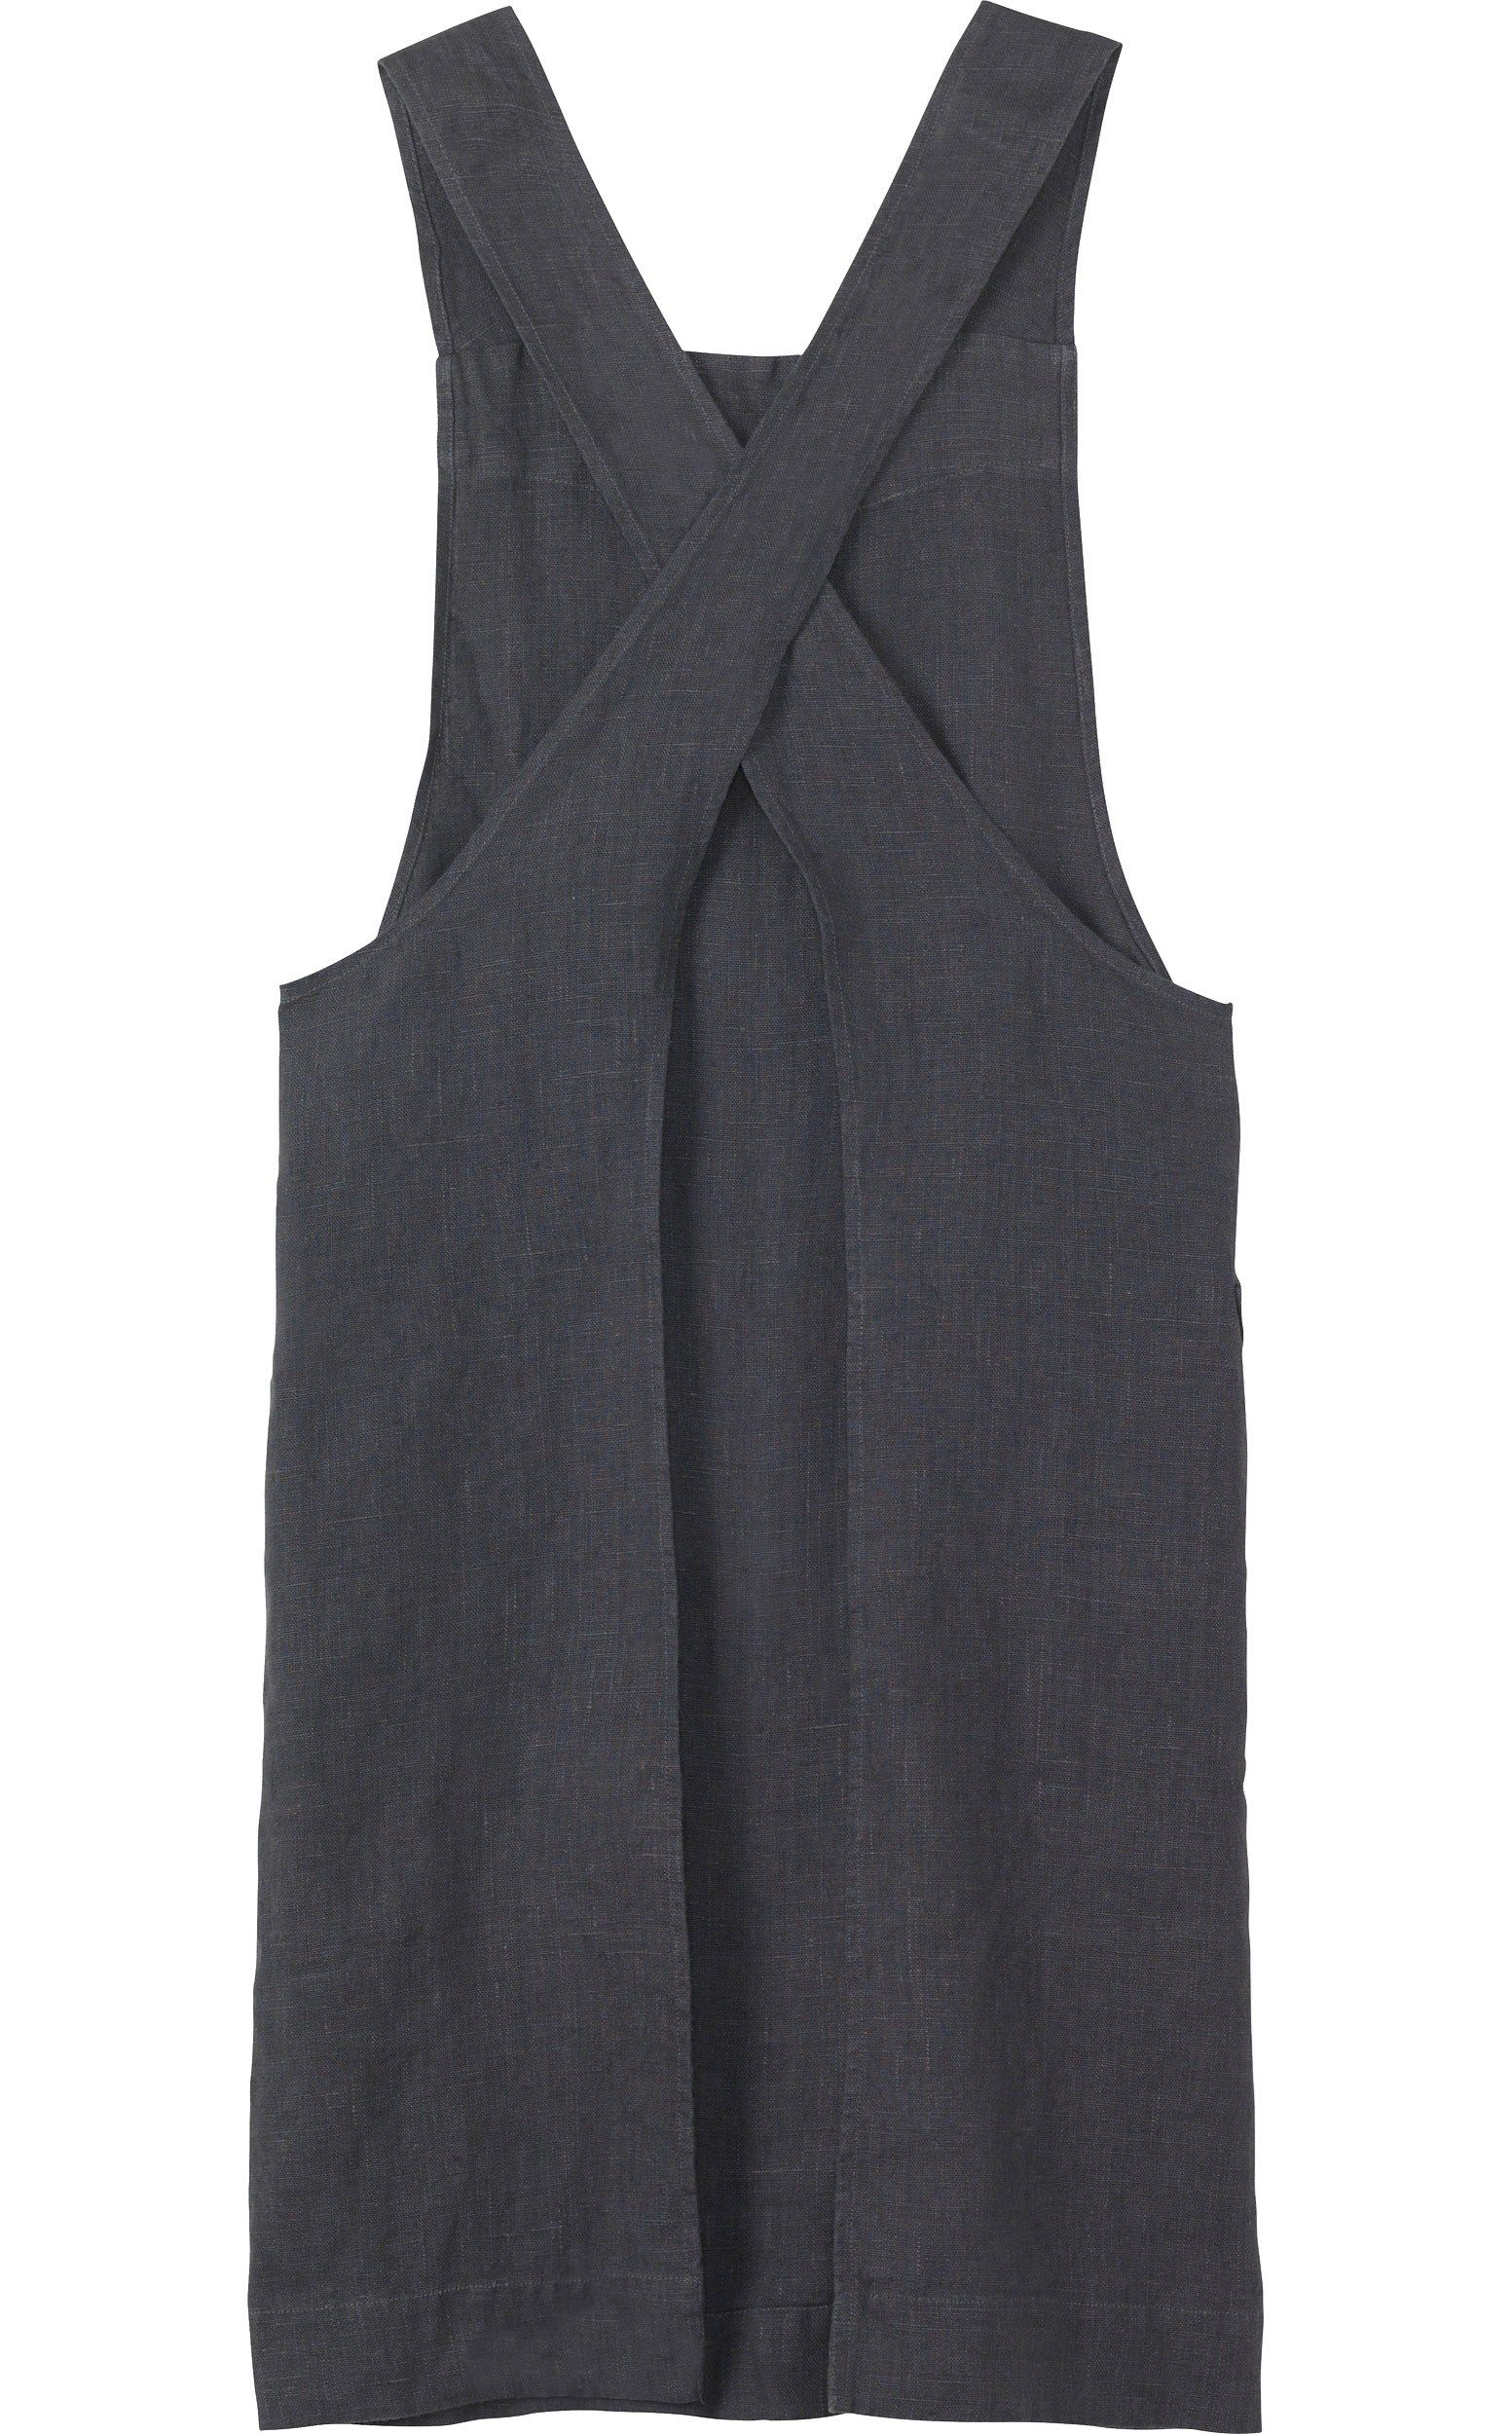 72562460c33 Apron in good quality, slubby, robust washed linen from the Baltic. Two,  wide straps cross over at the back. Two patch pockets.